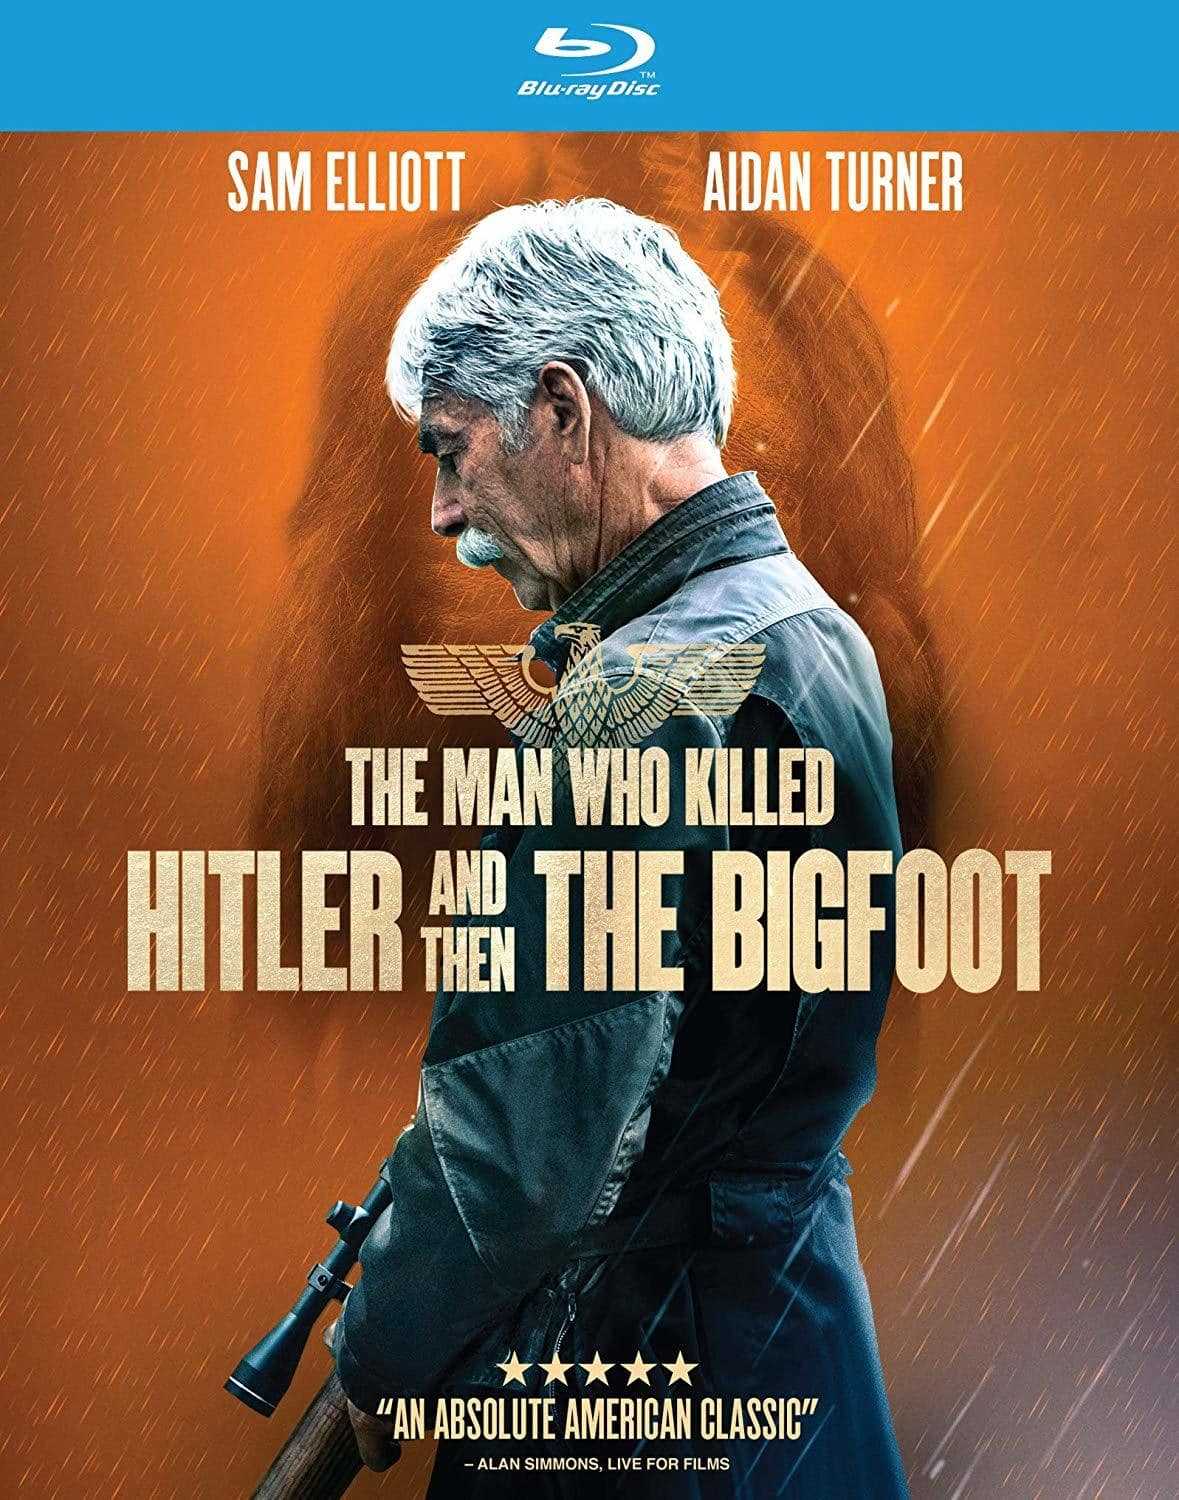 The Man Who Killed Hitler and Then The Bigfoot (Blu-ray) $7